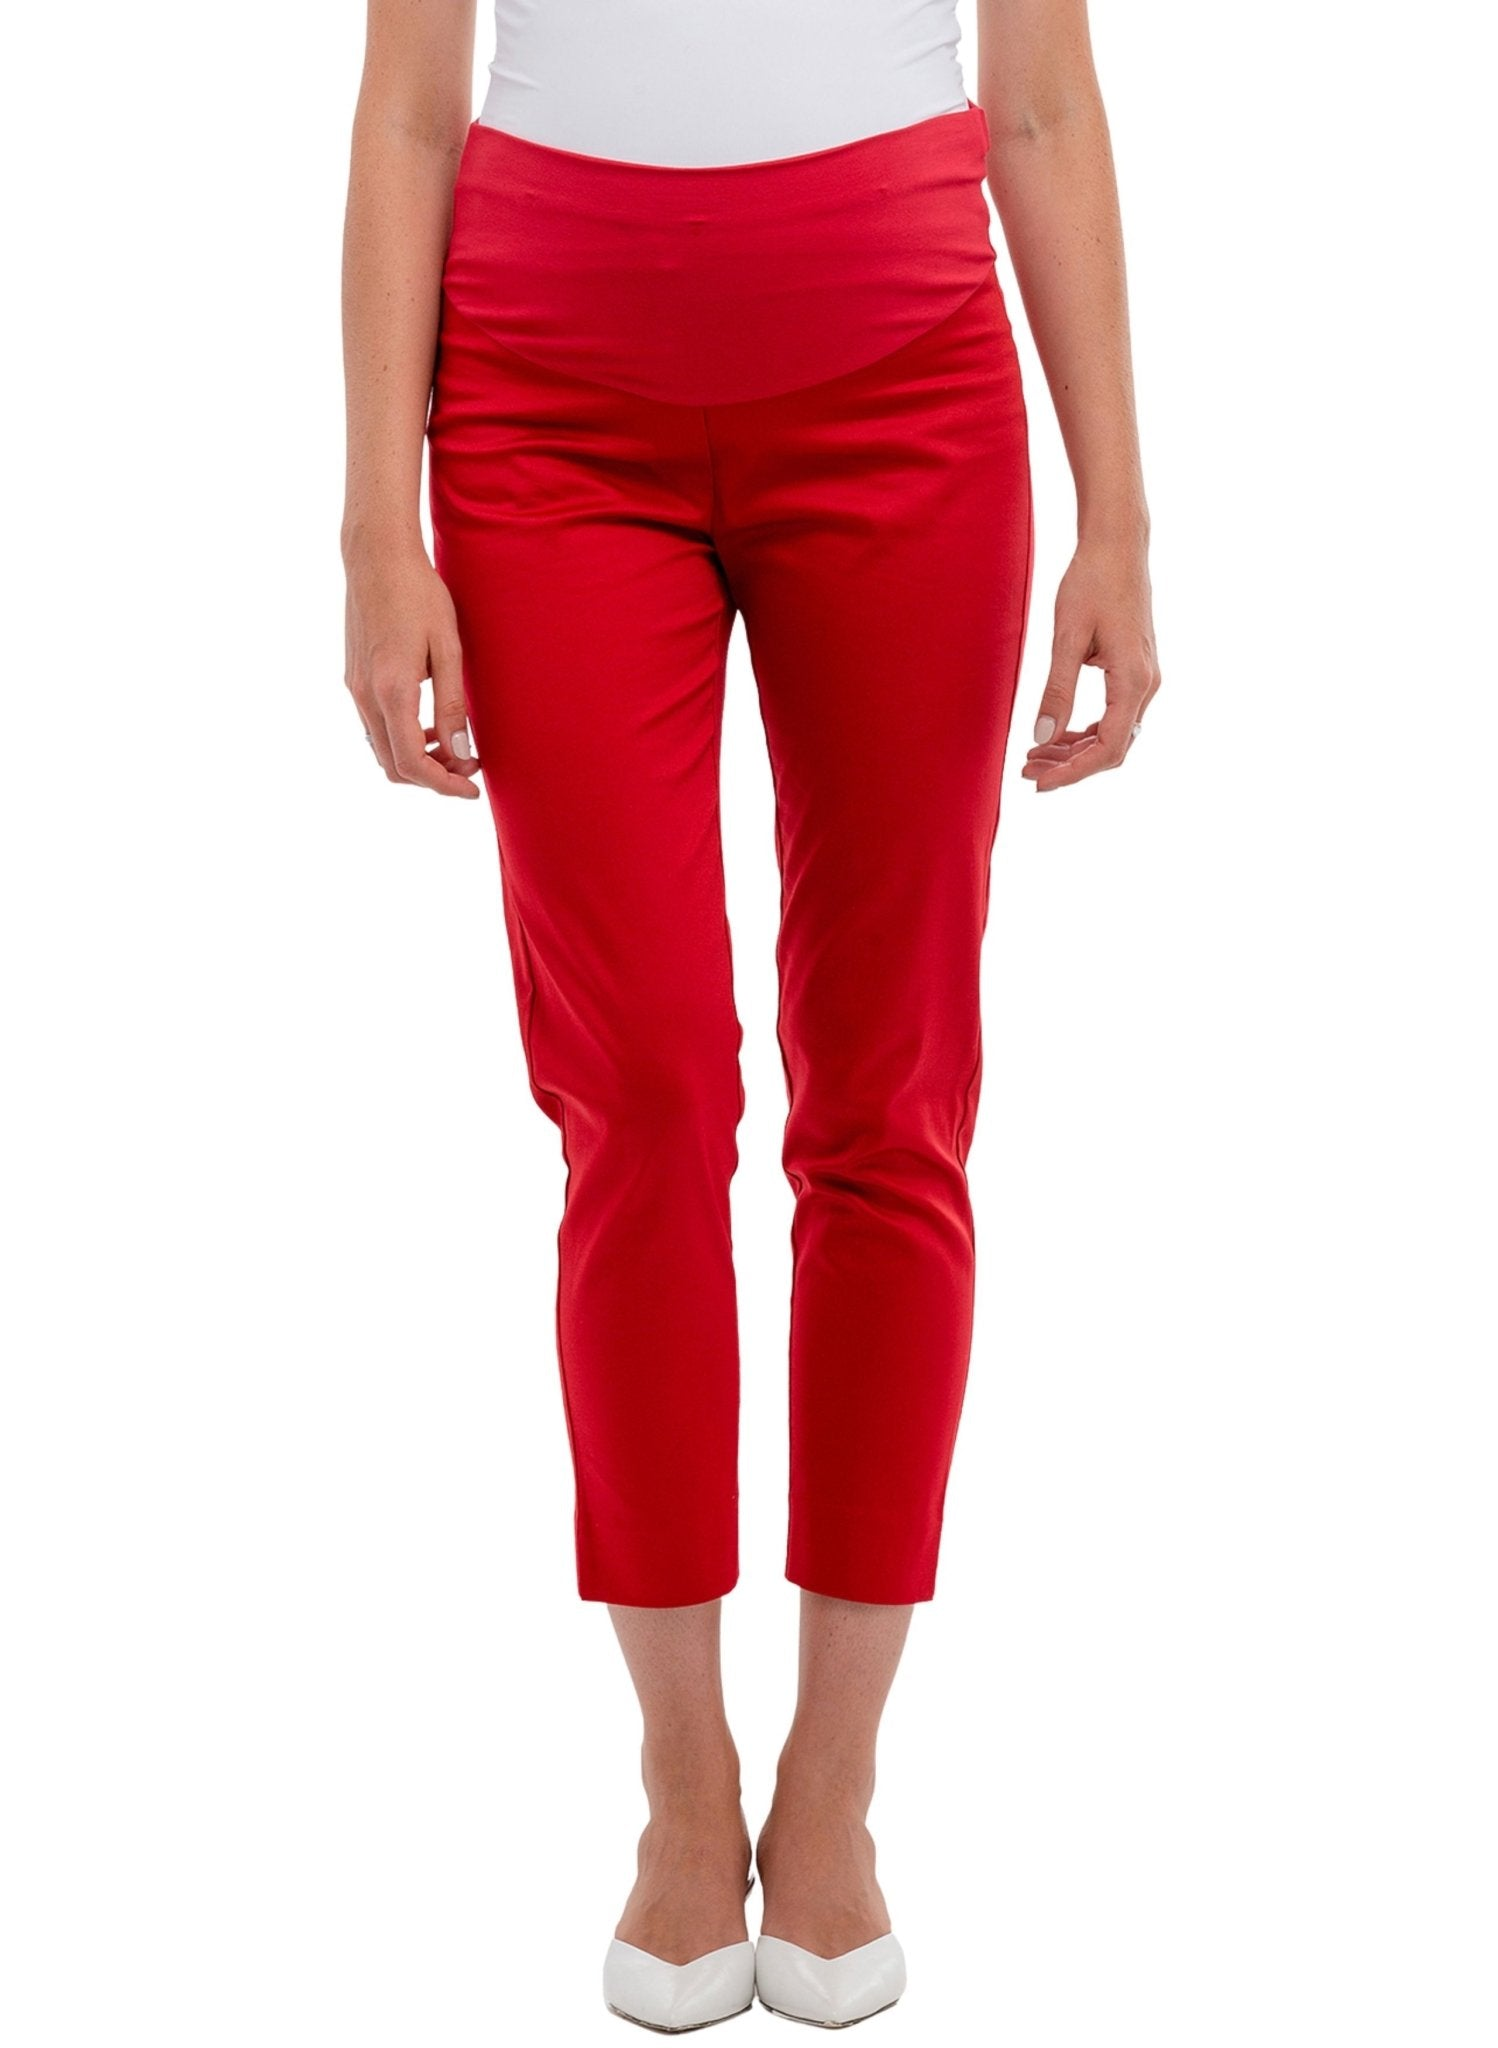 Dylan Maternity Pants - Red - Mums and Bumps